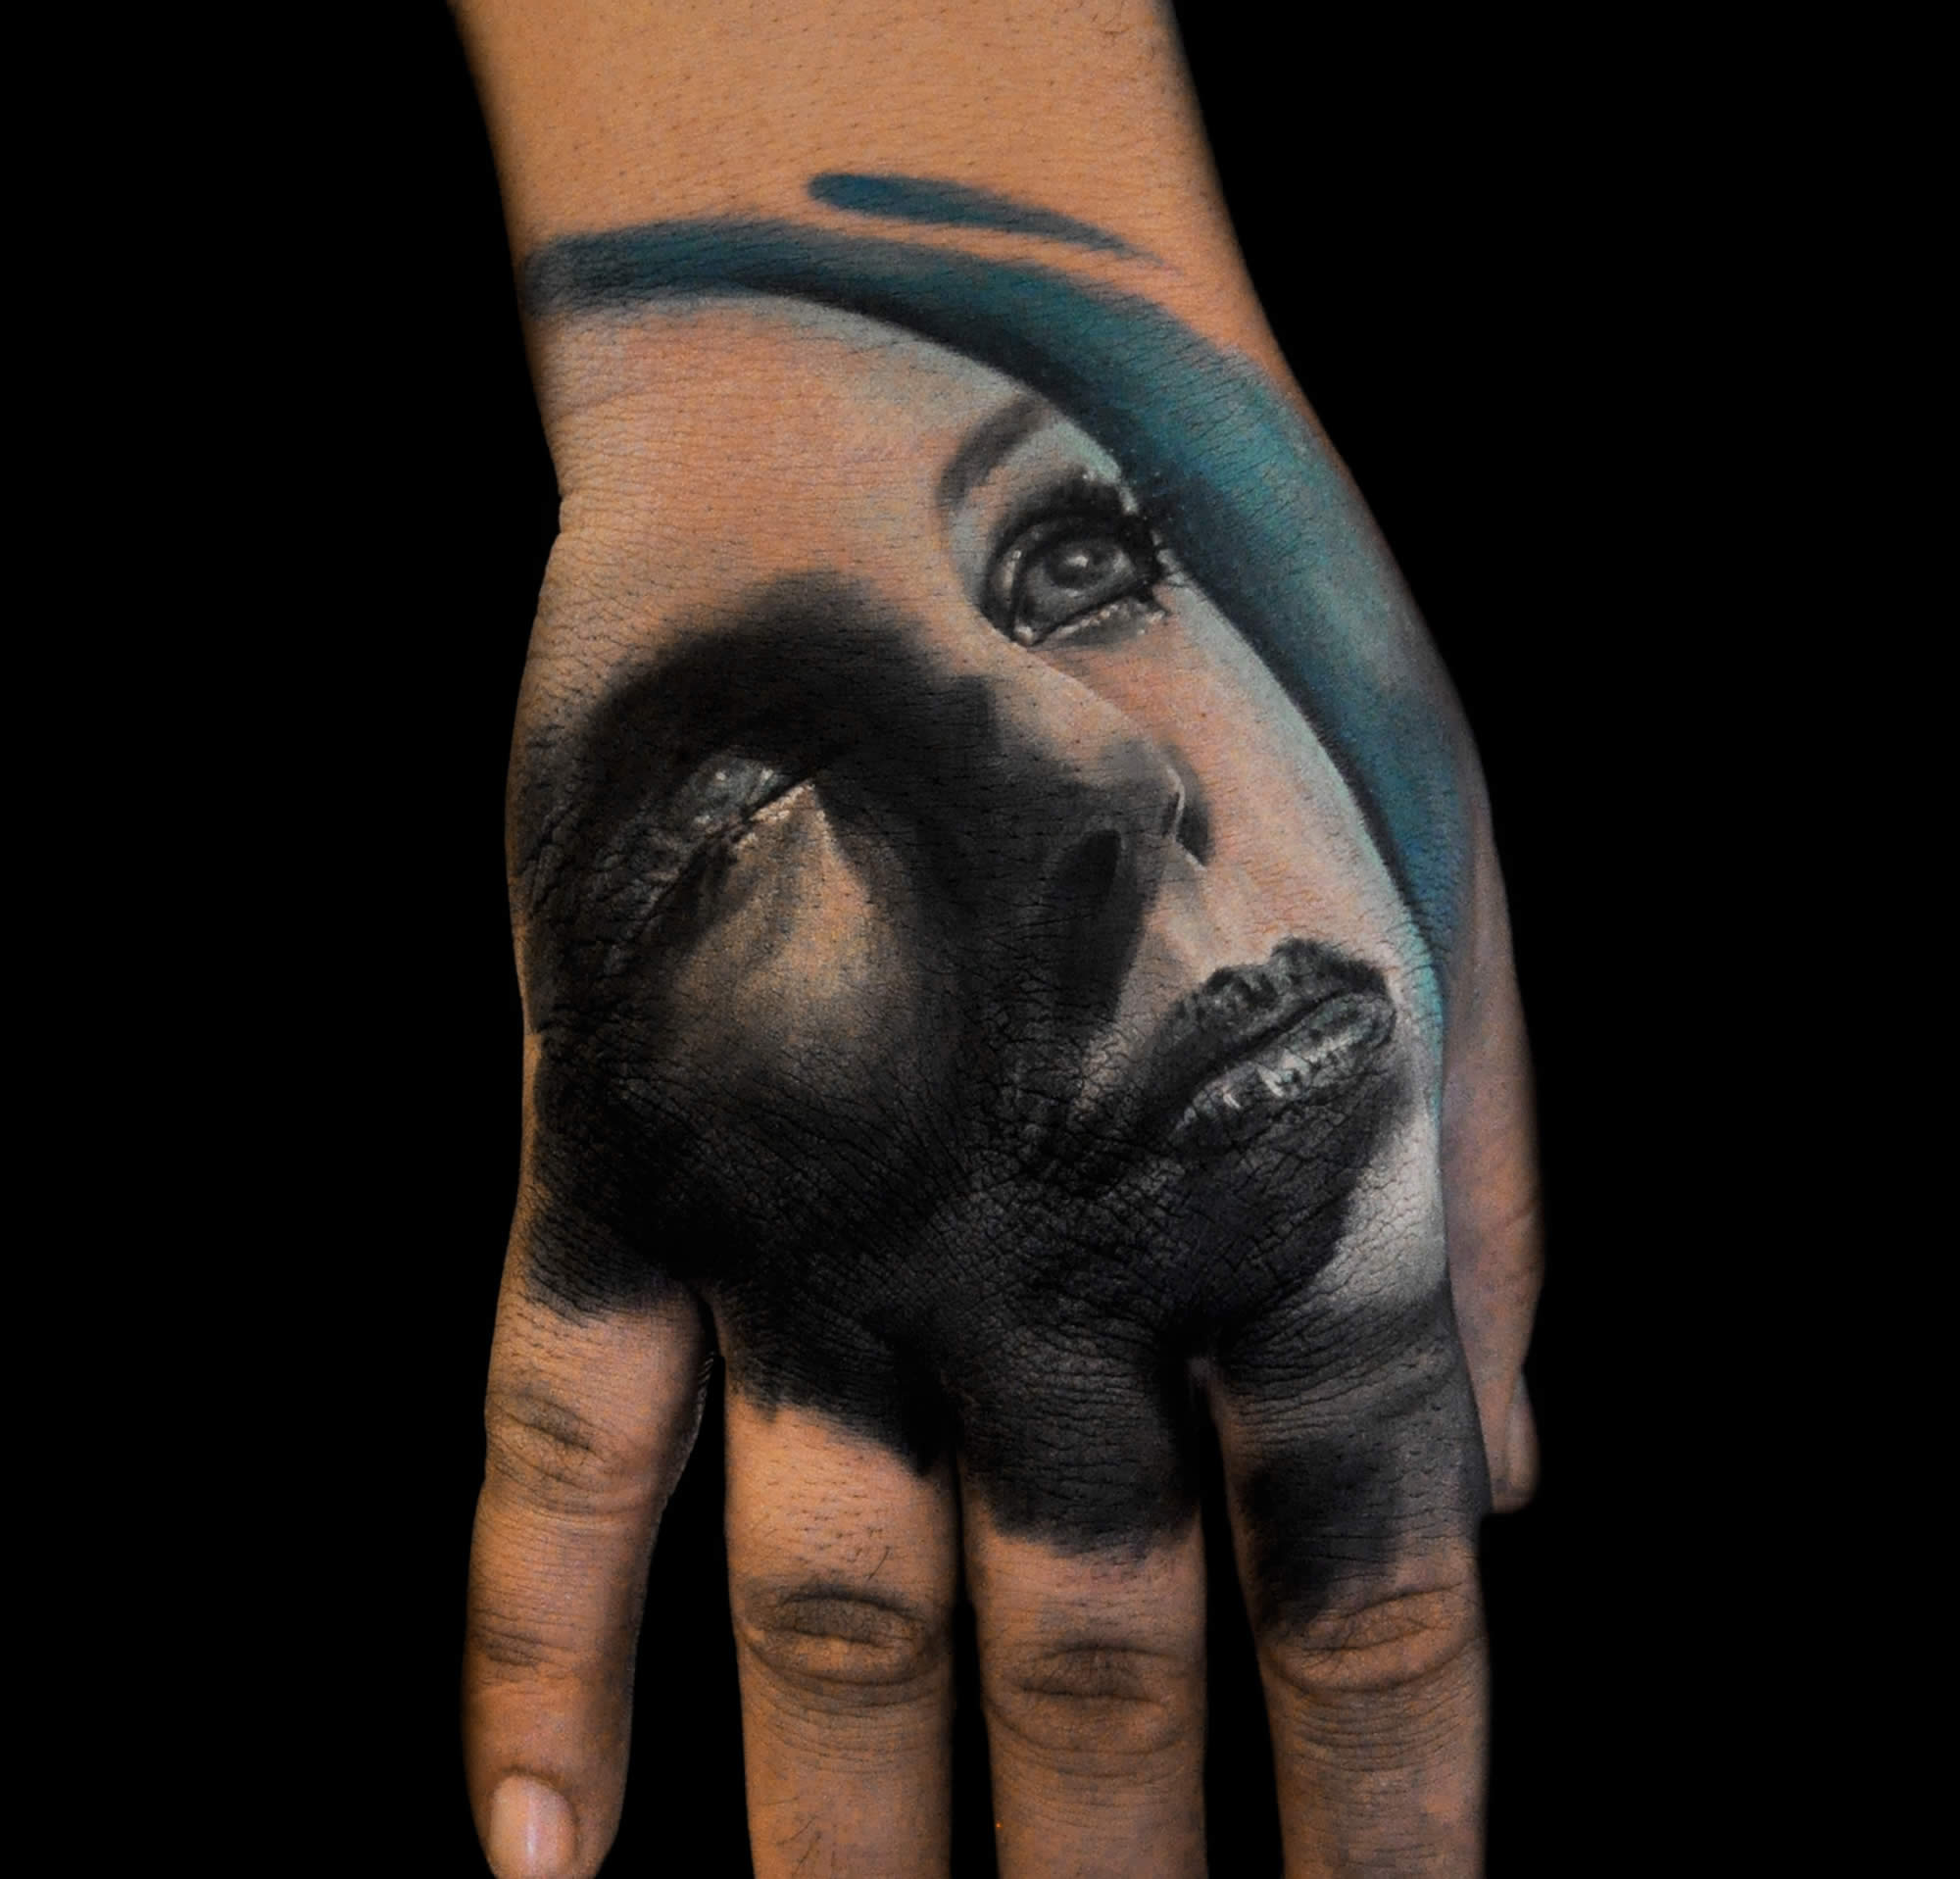 portrait of woman on hand, hand tattoo